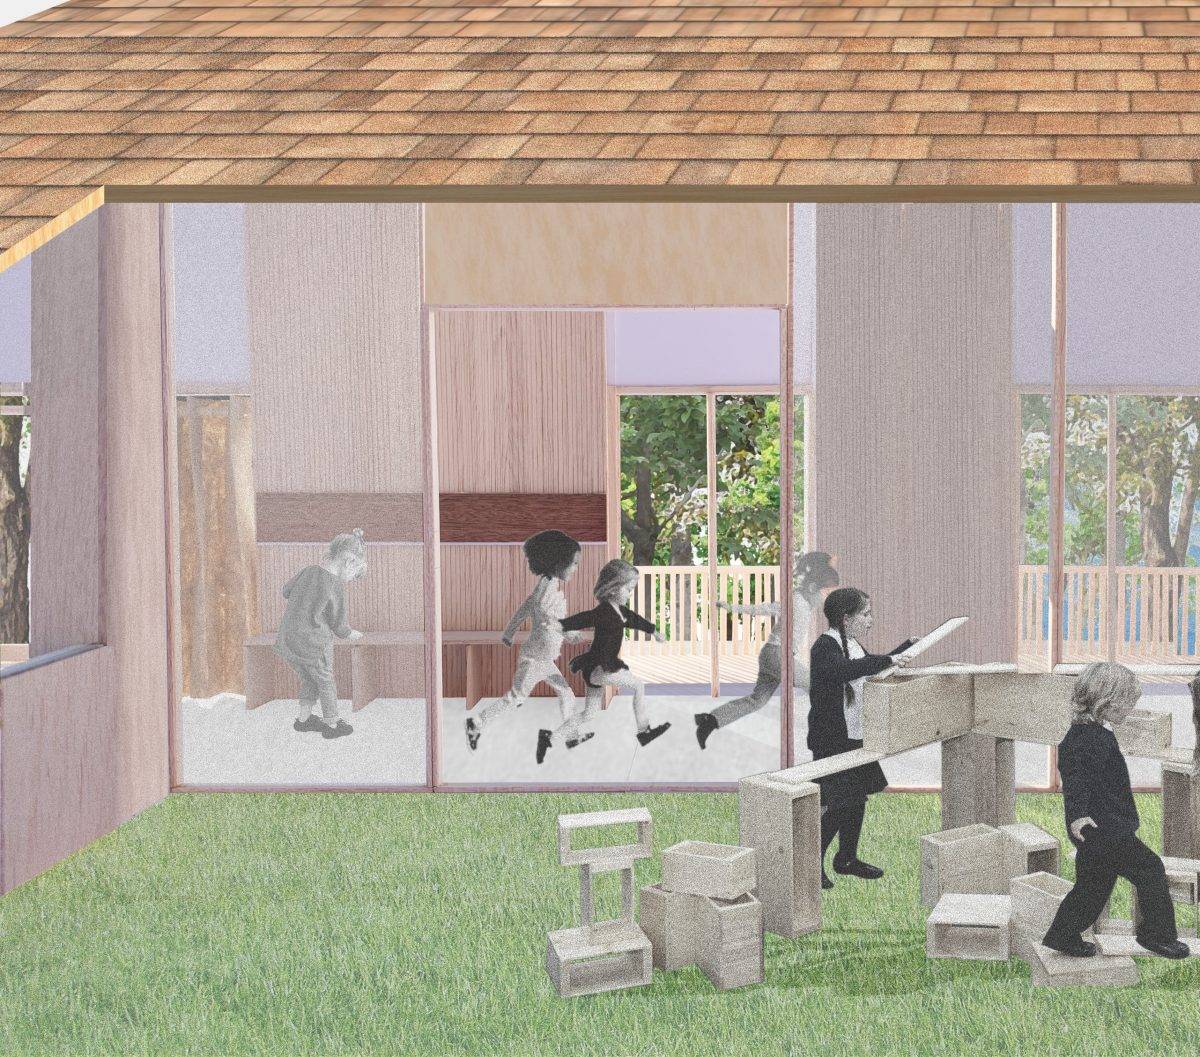 Mirrored indoor and outdoor learning spaces.